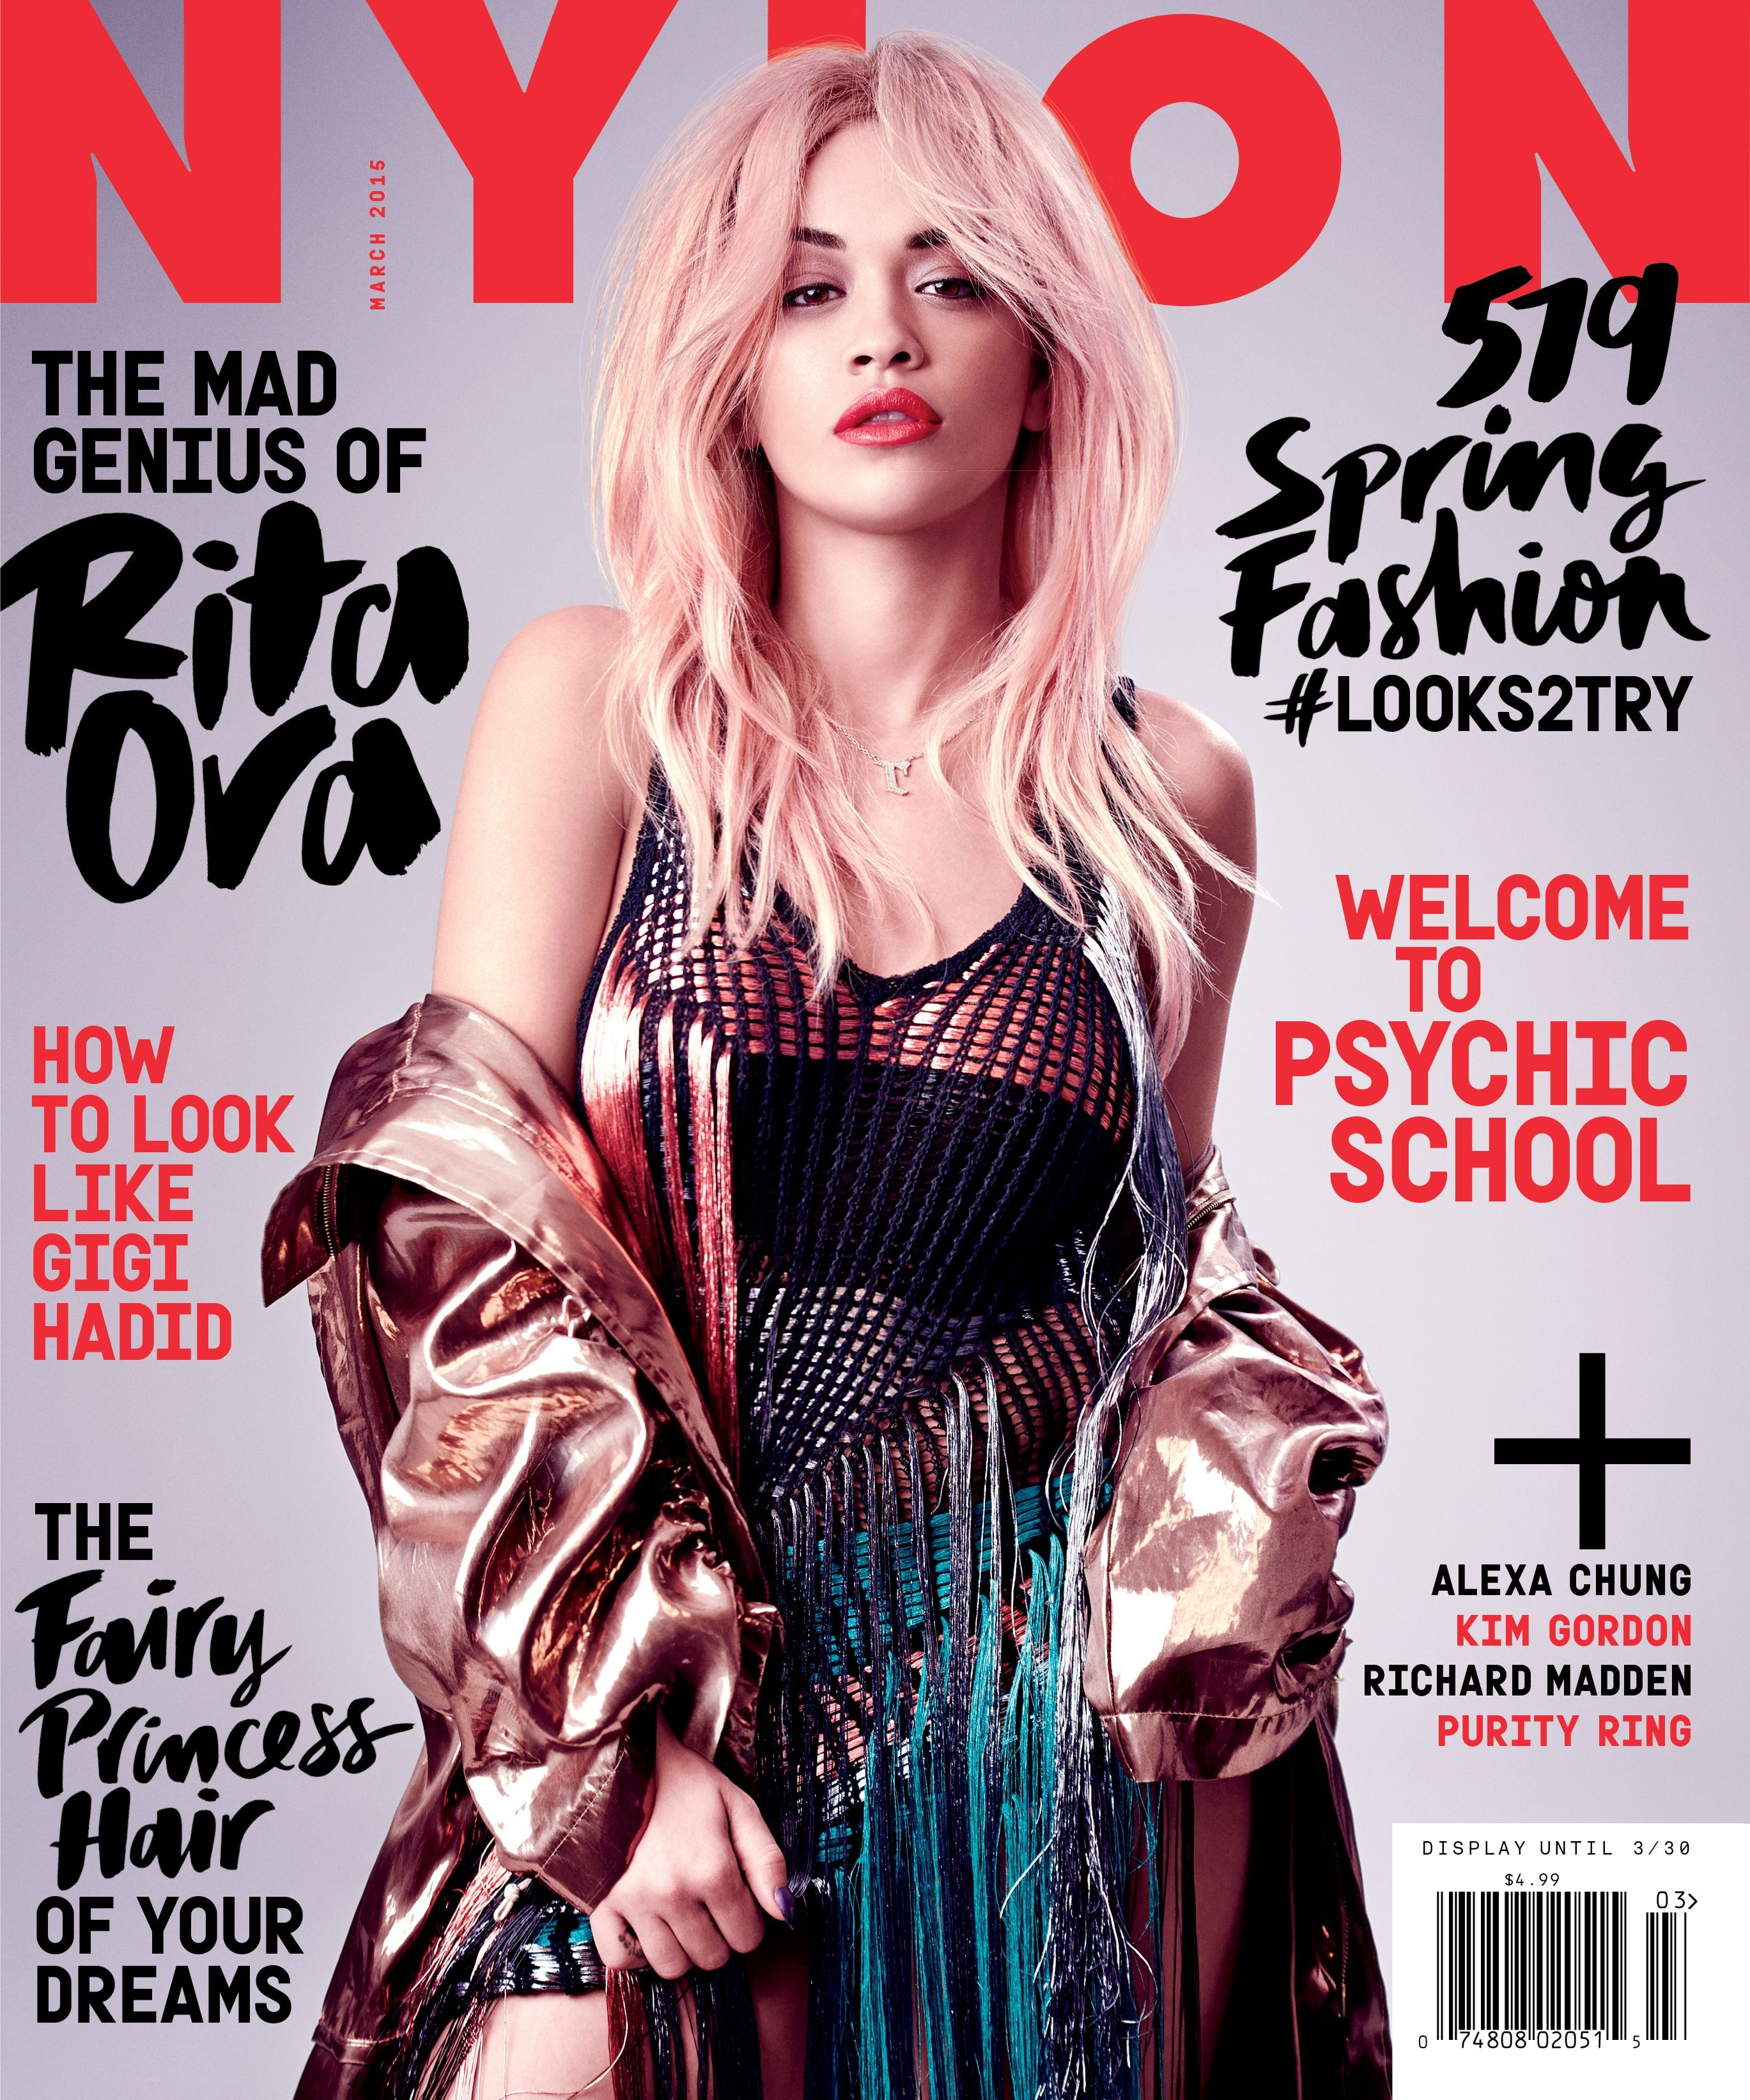 rita ora is our march cover star | NYLON Magazine Covers | Pinterest ...